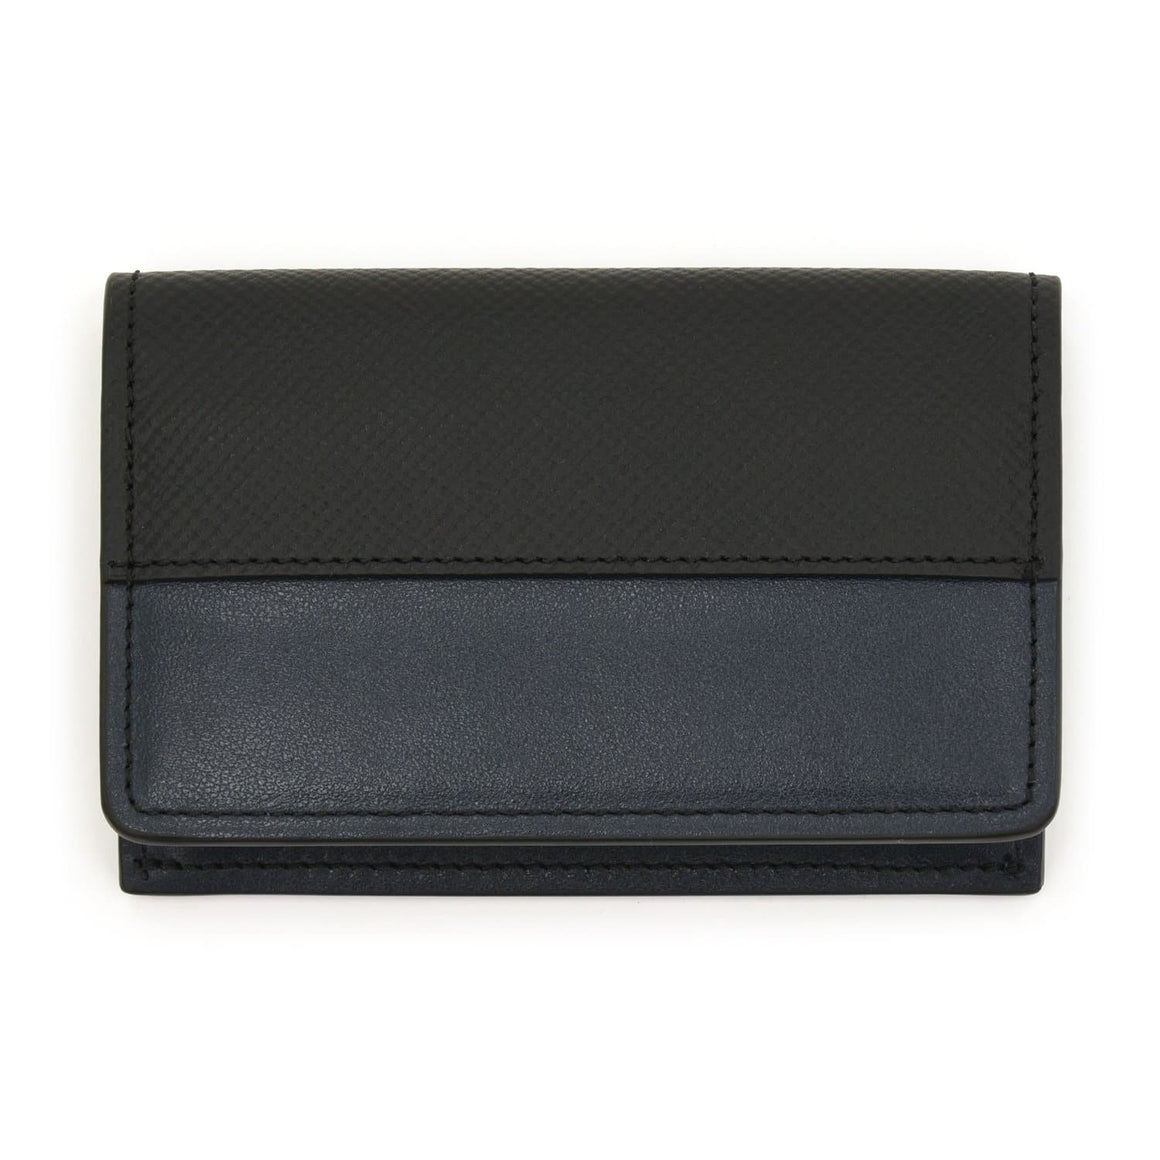 007 Navy Leather Card Holder By Globe-Trotter - 007STORE